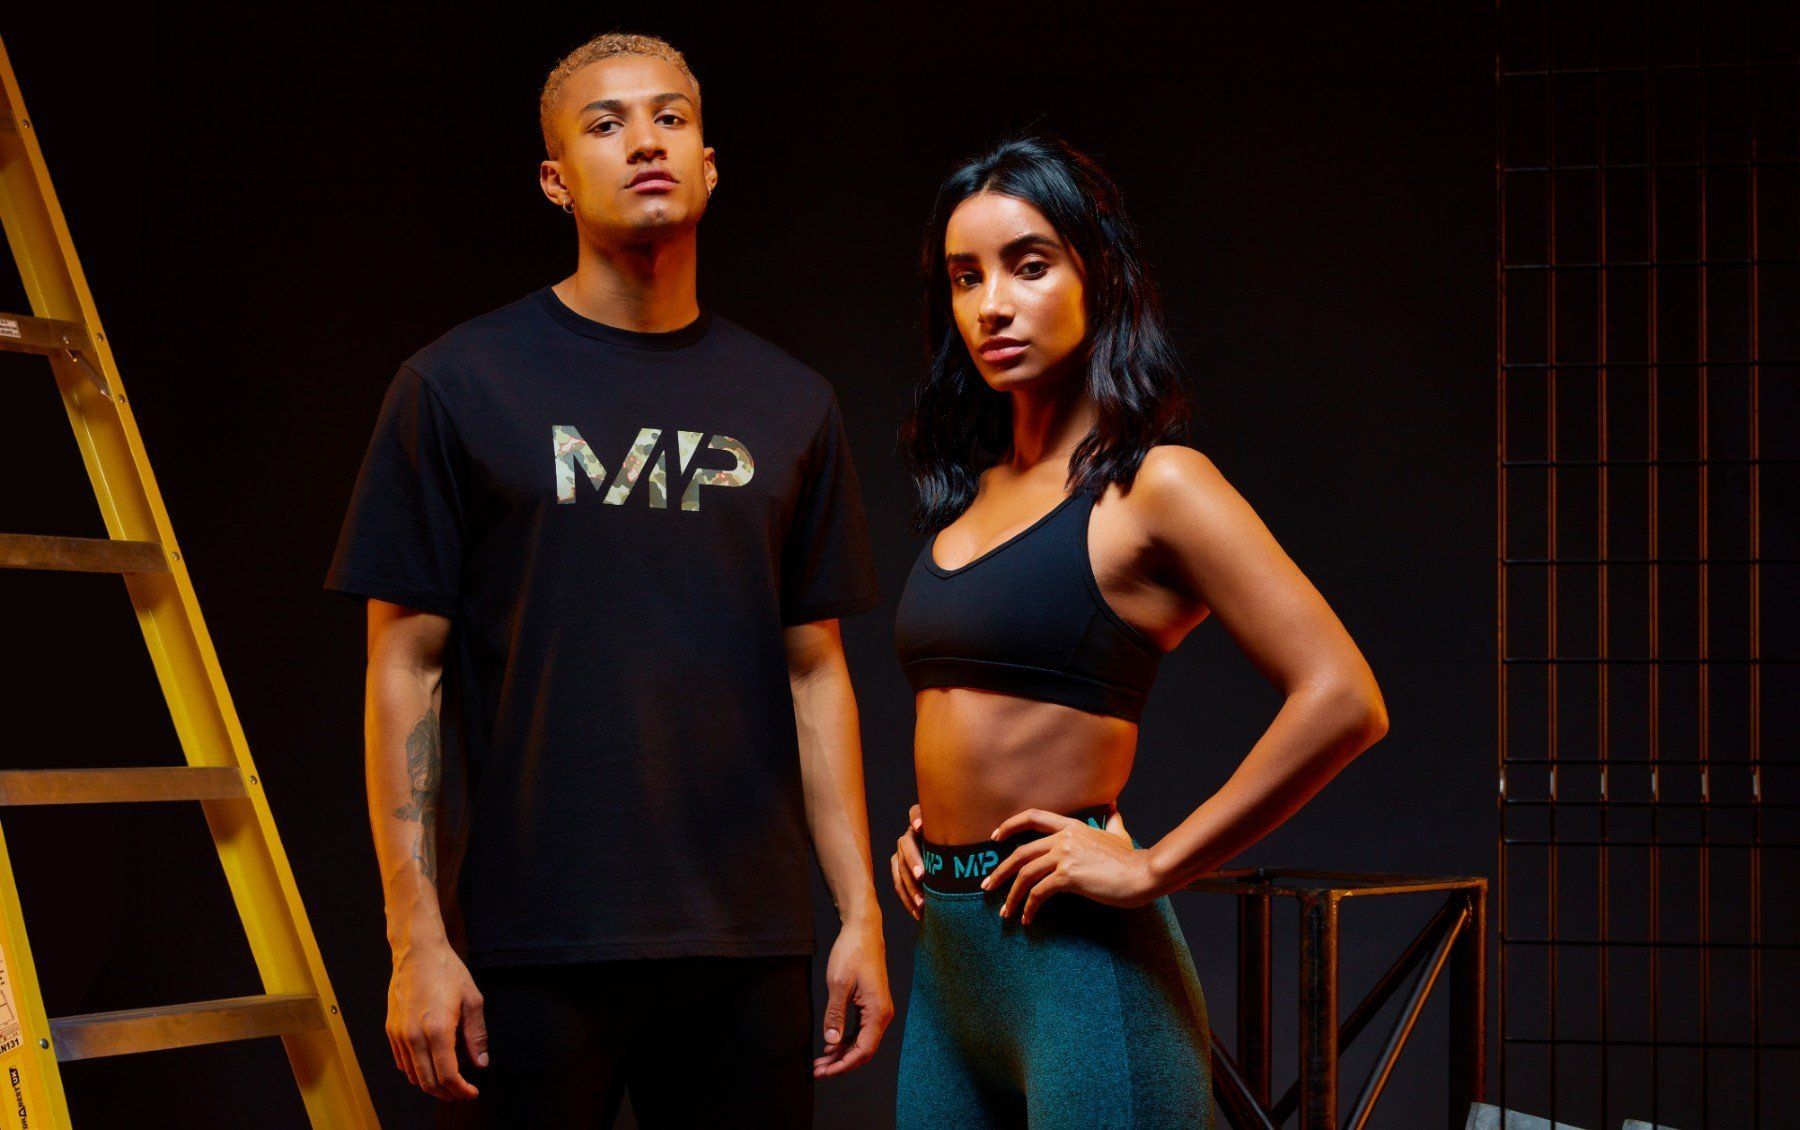 Fitness Clothing Gifts For Him & Her | Our Complete Guide